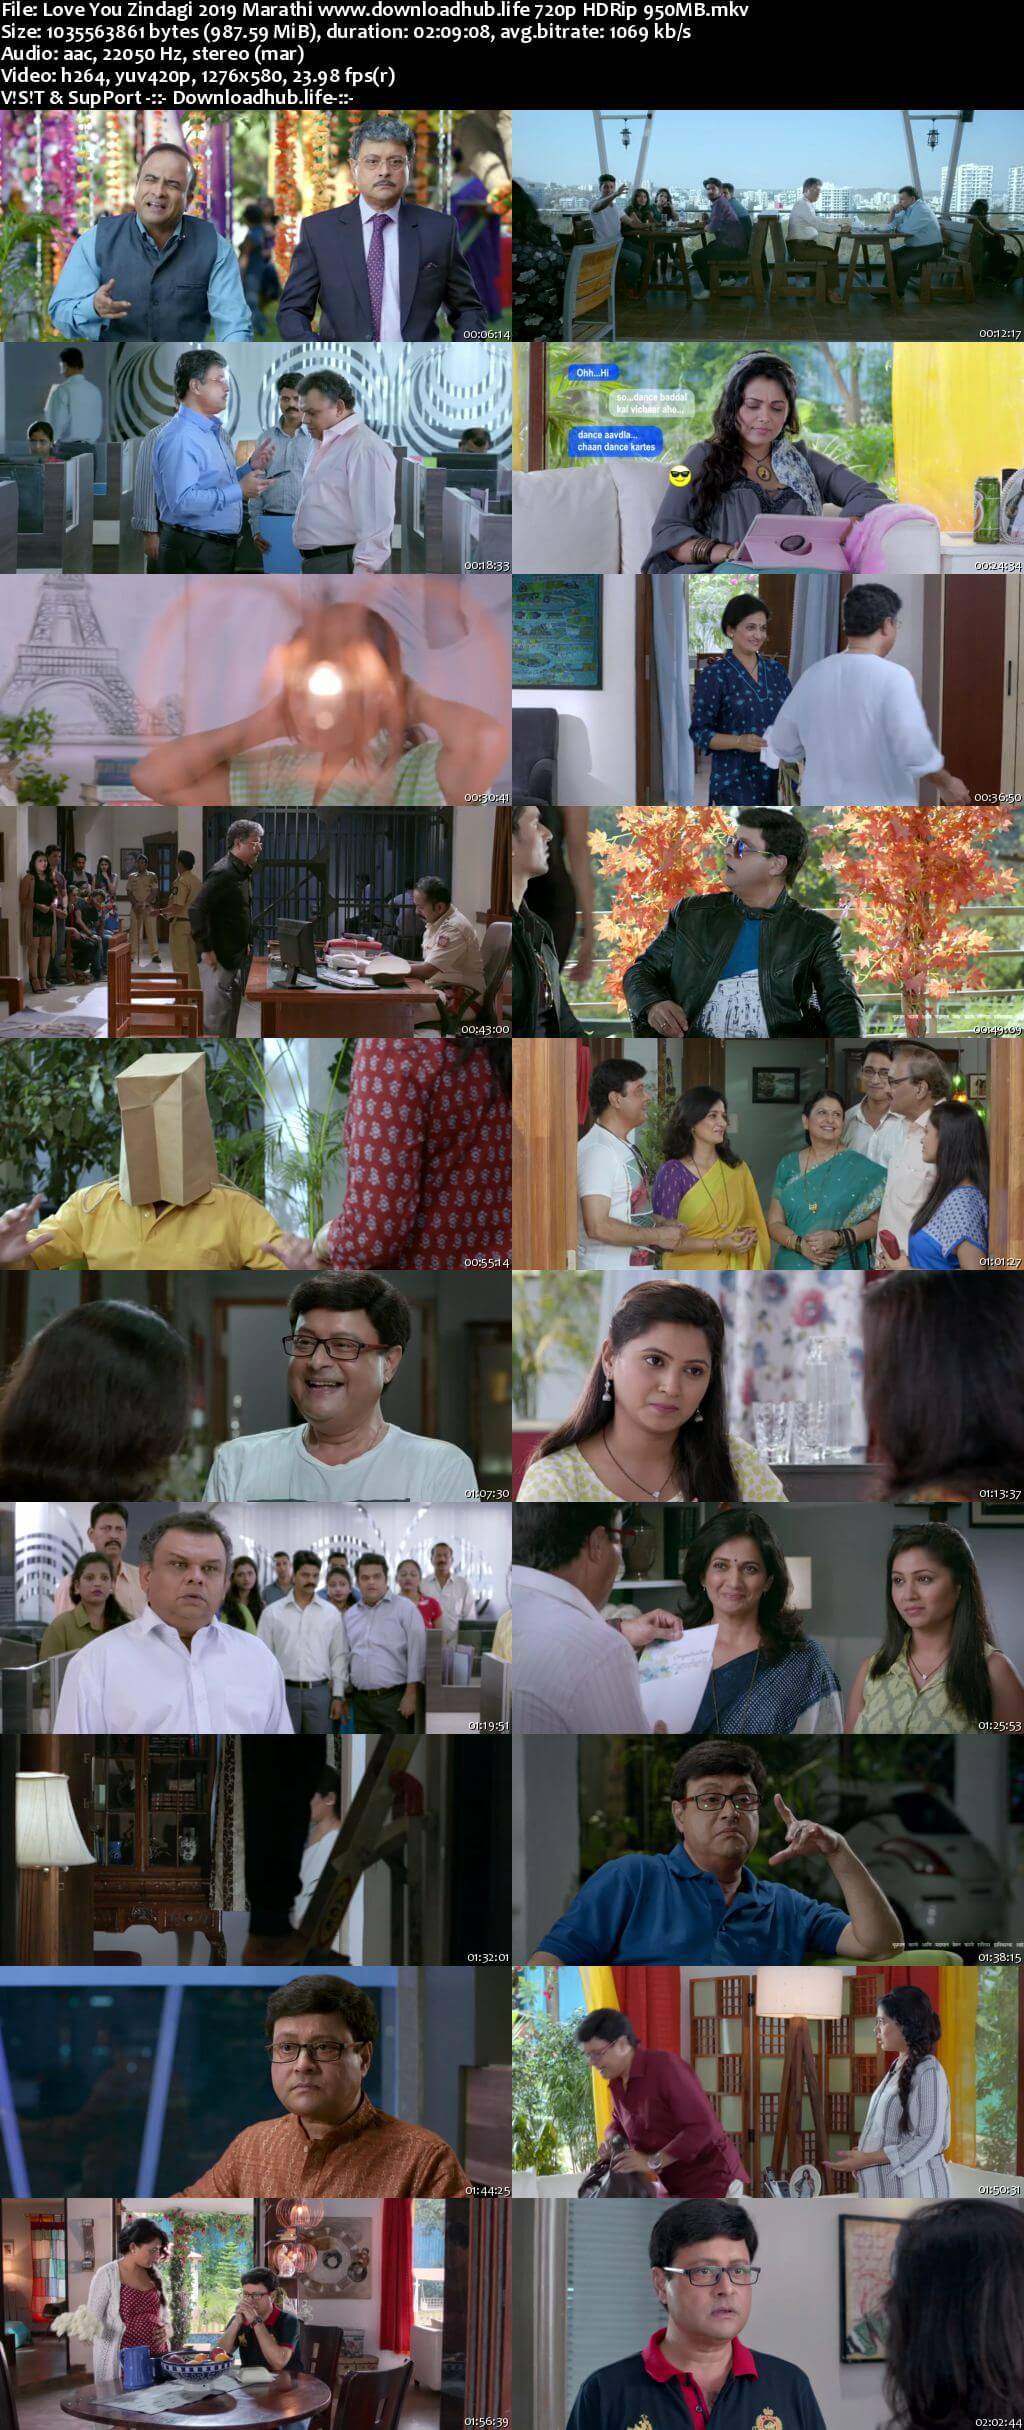 Love You Zindagi 2019 Marathi 720p HDRip x264